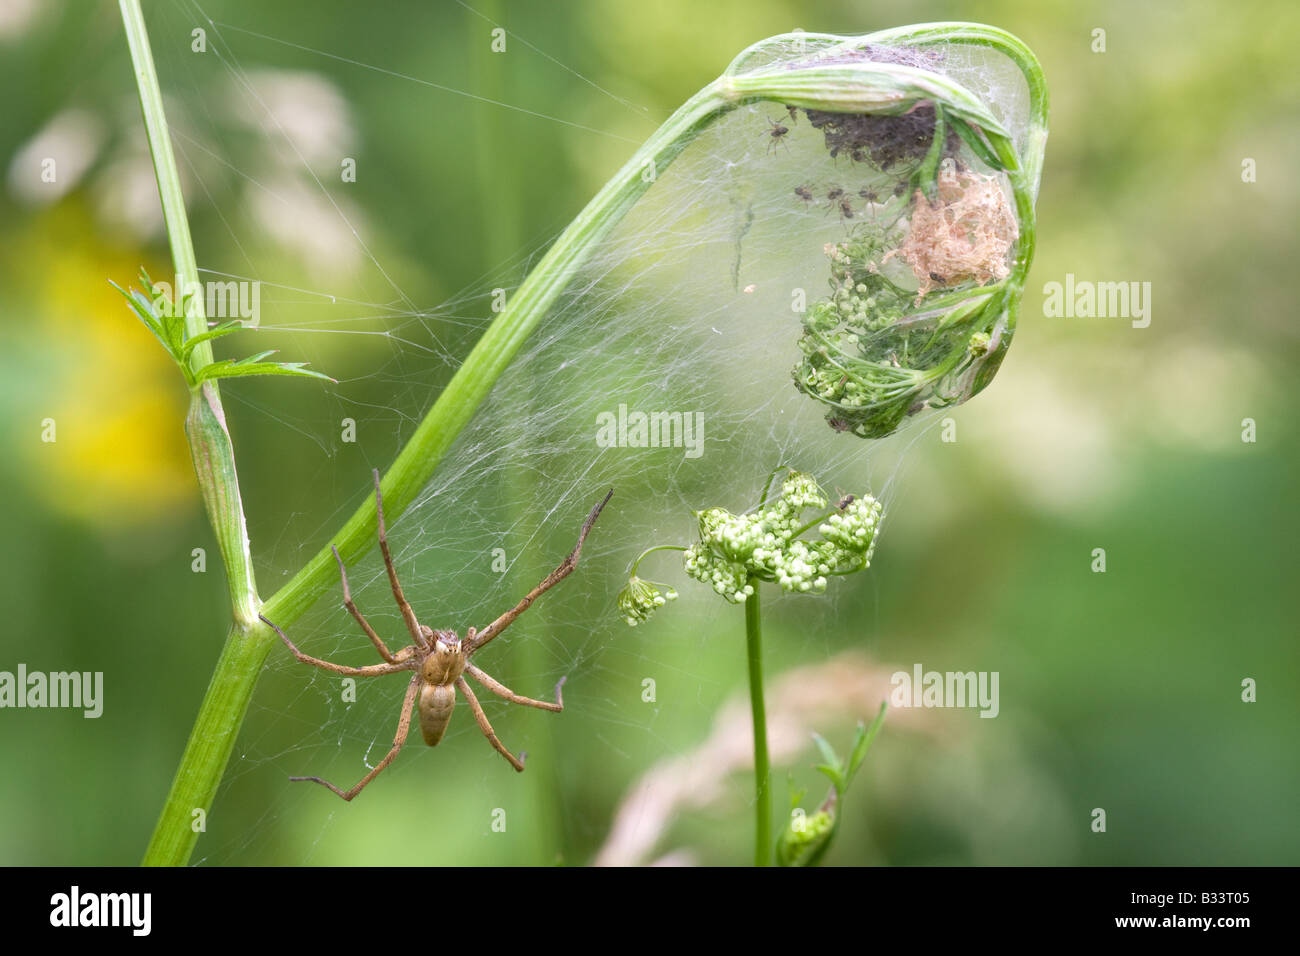 Nursery Web Spider Pisaura mirabillis adult female spider guarding freshly hatched spiderlings in web on an umbellifer - Stock Image